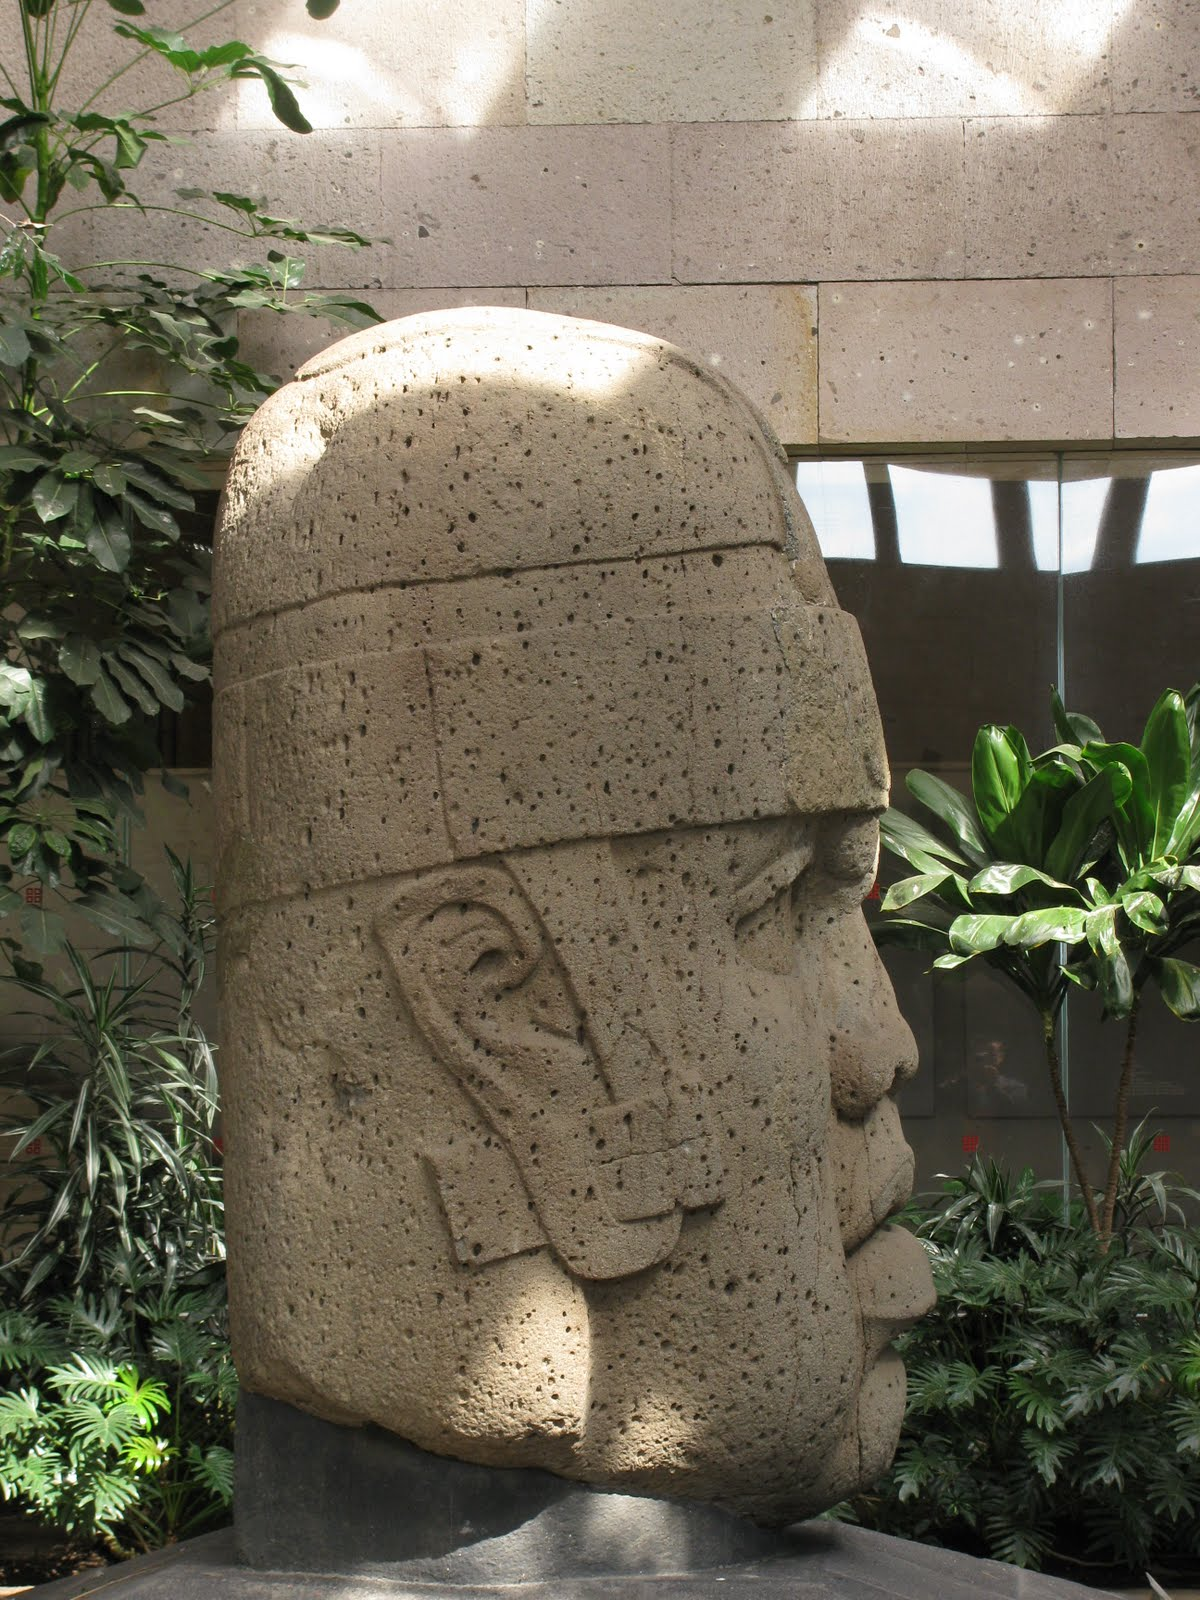 National Museum of Anthropology, Mexico City, Olmec head